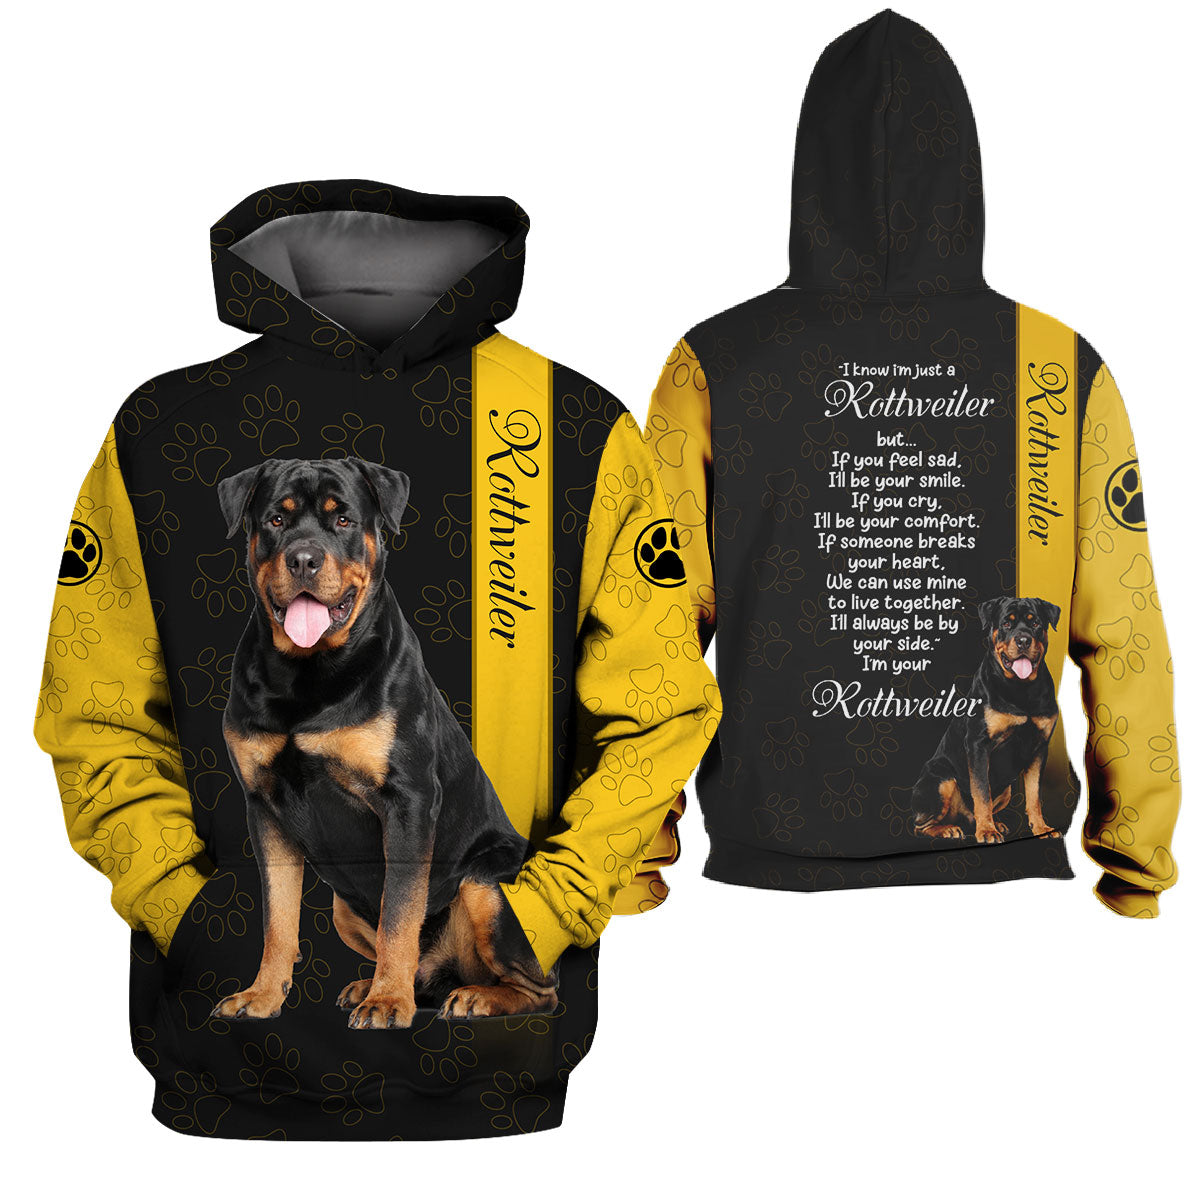 3d Apparel - I'll always be by your side - Rottweiler